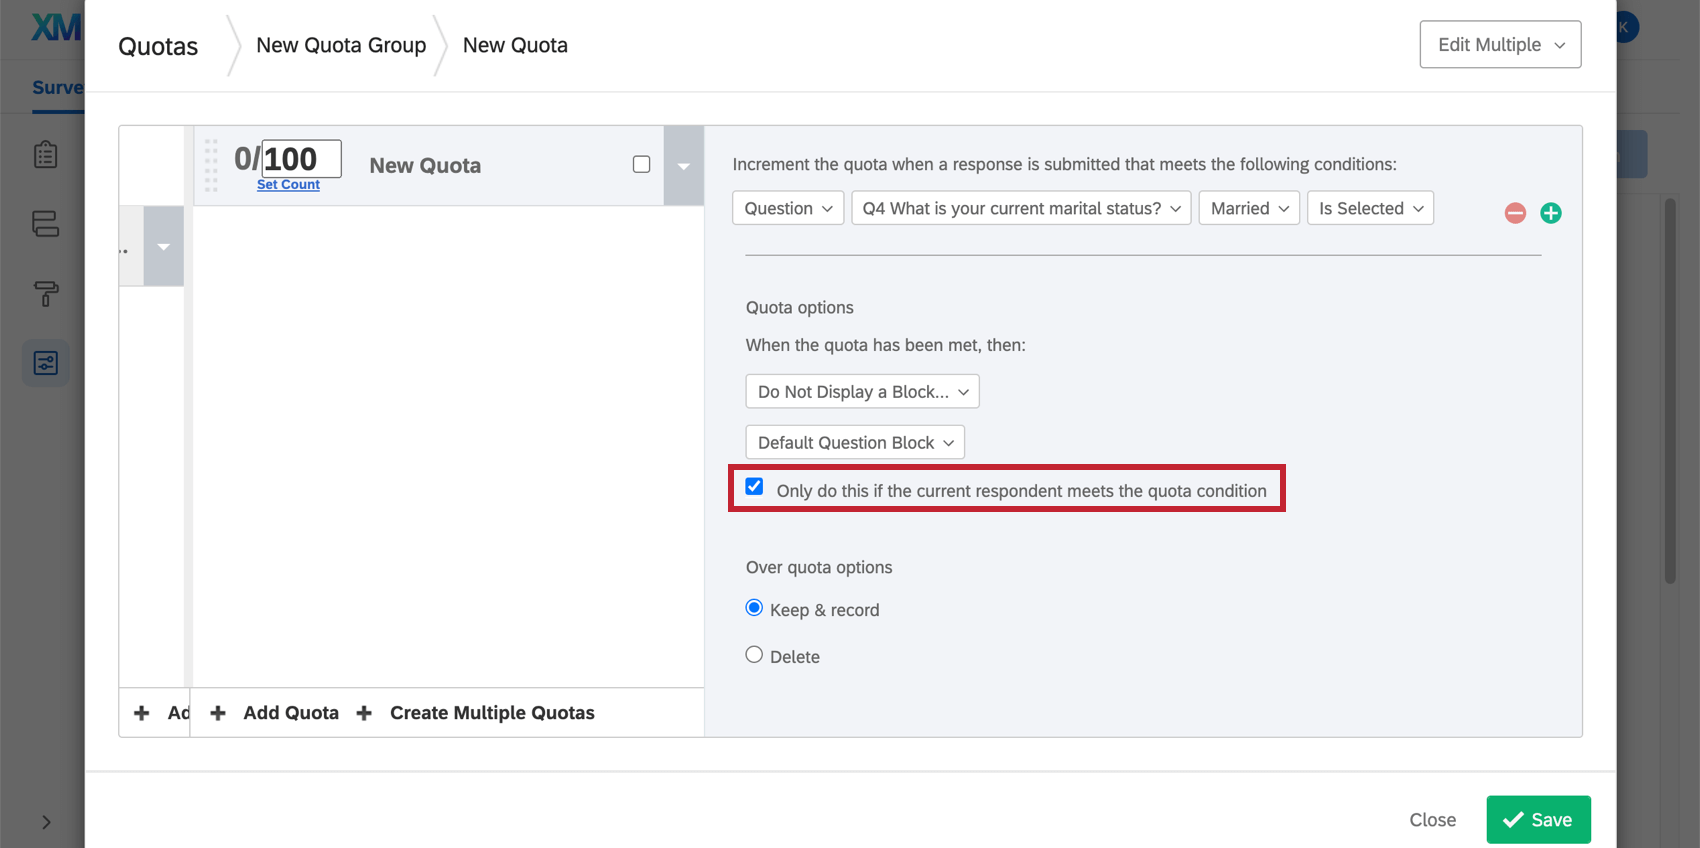 Do Not Display a Block also has the Only do this if the current respondent meets the quota condition option